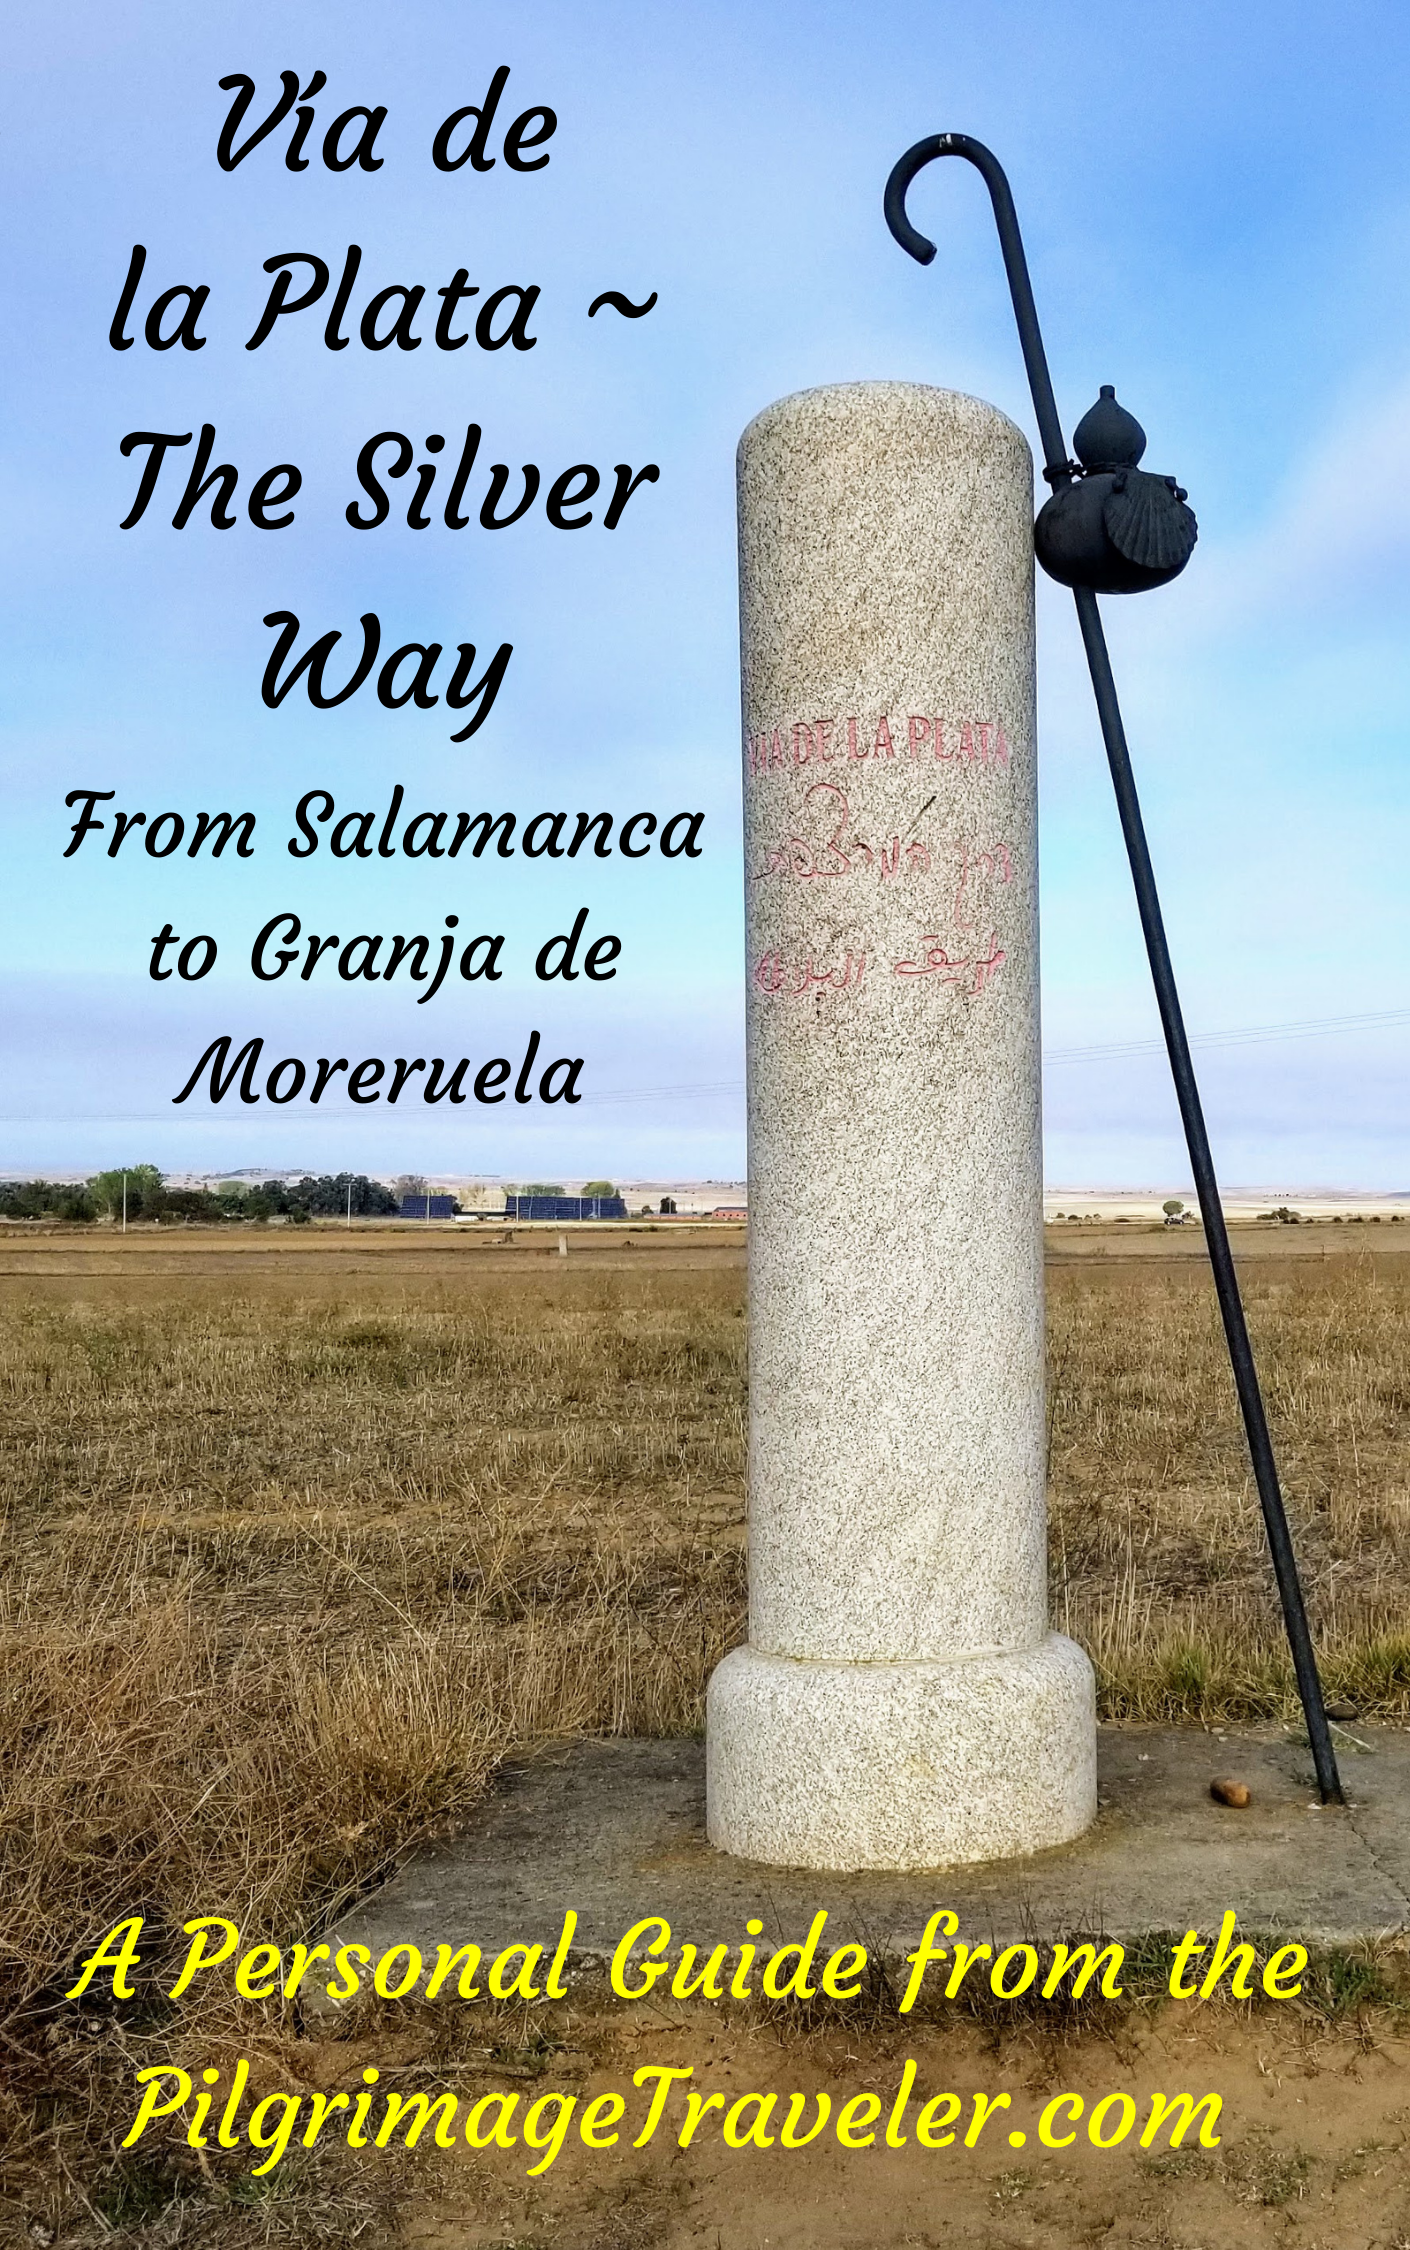 Your purchase includes BONUS MATERIAL shown here, with the possibility of extending your Camino Sanabrés from Salamanca on the Vía de la Plata